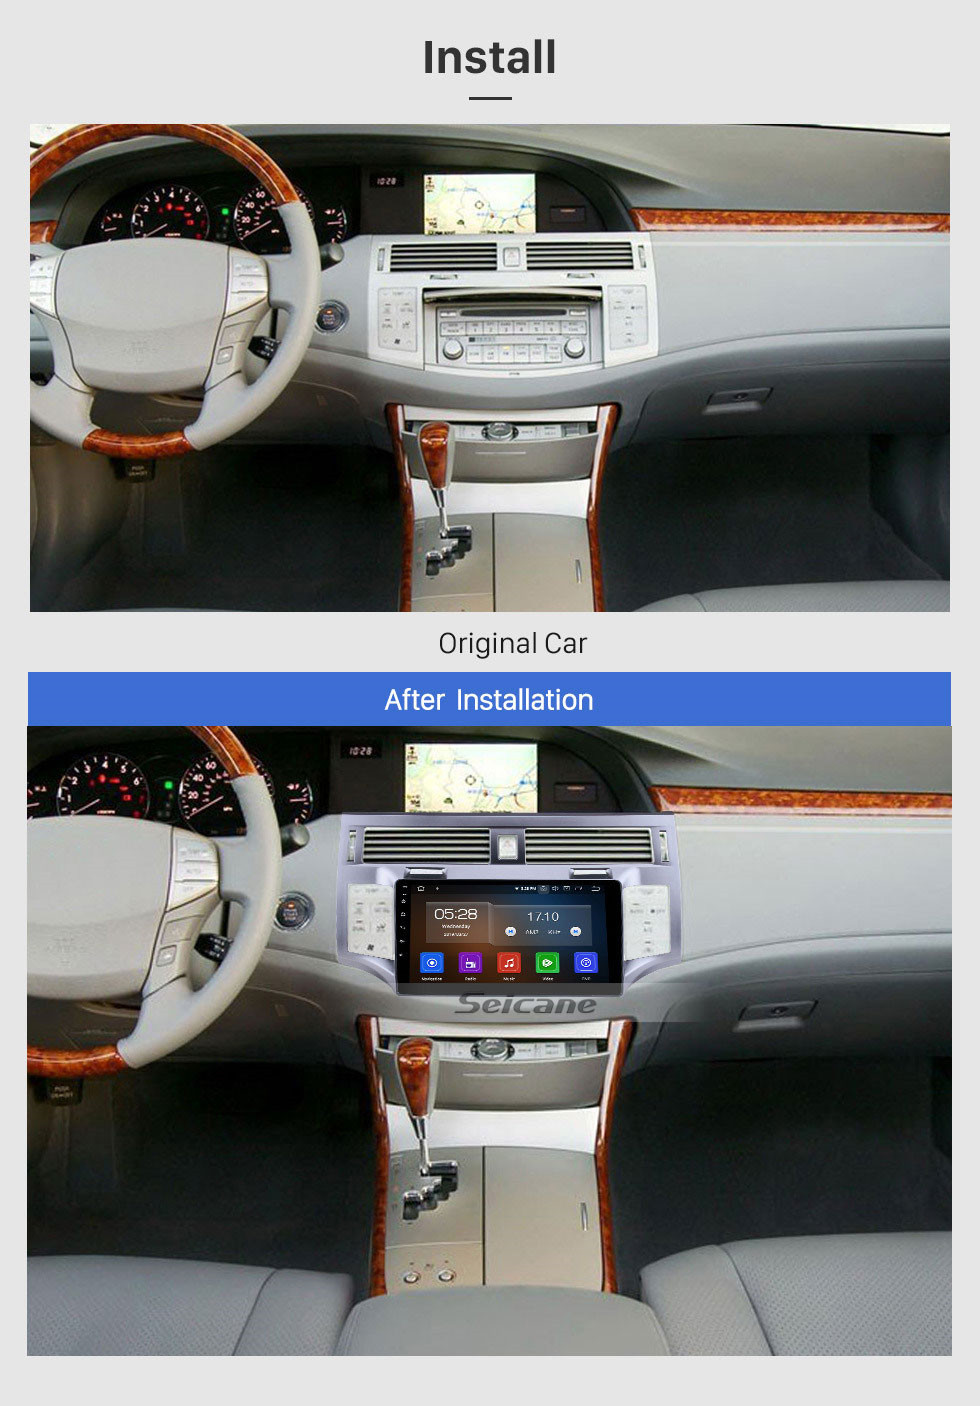 Seicane OEM Android 10.0 HD Touchscreen 9 Inch Car Multimedia Player for 2006 2007 2008 2009 2010 TOYOTA AVALON with Bluetooth GPS Navi Auto Radio Steering Wheel Control Rearview 4G WIFI